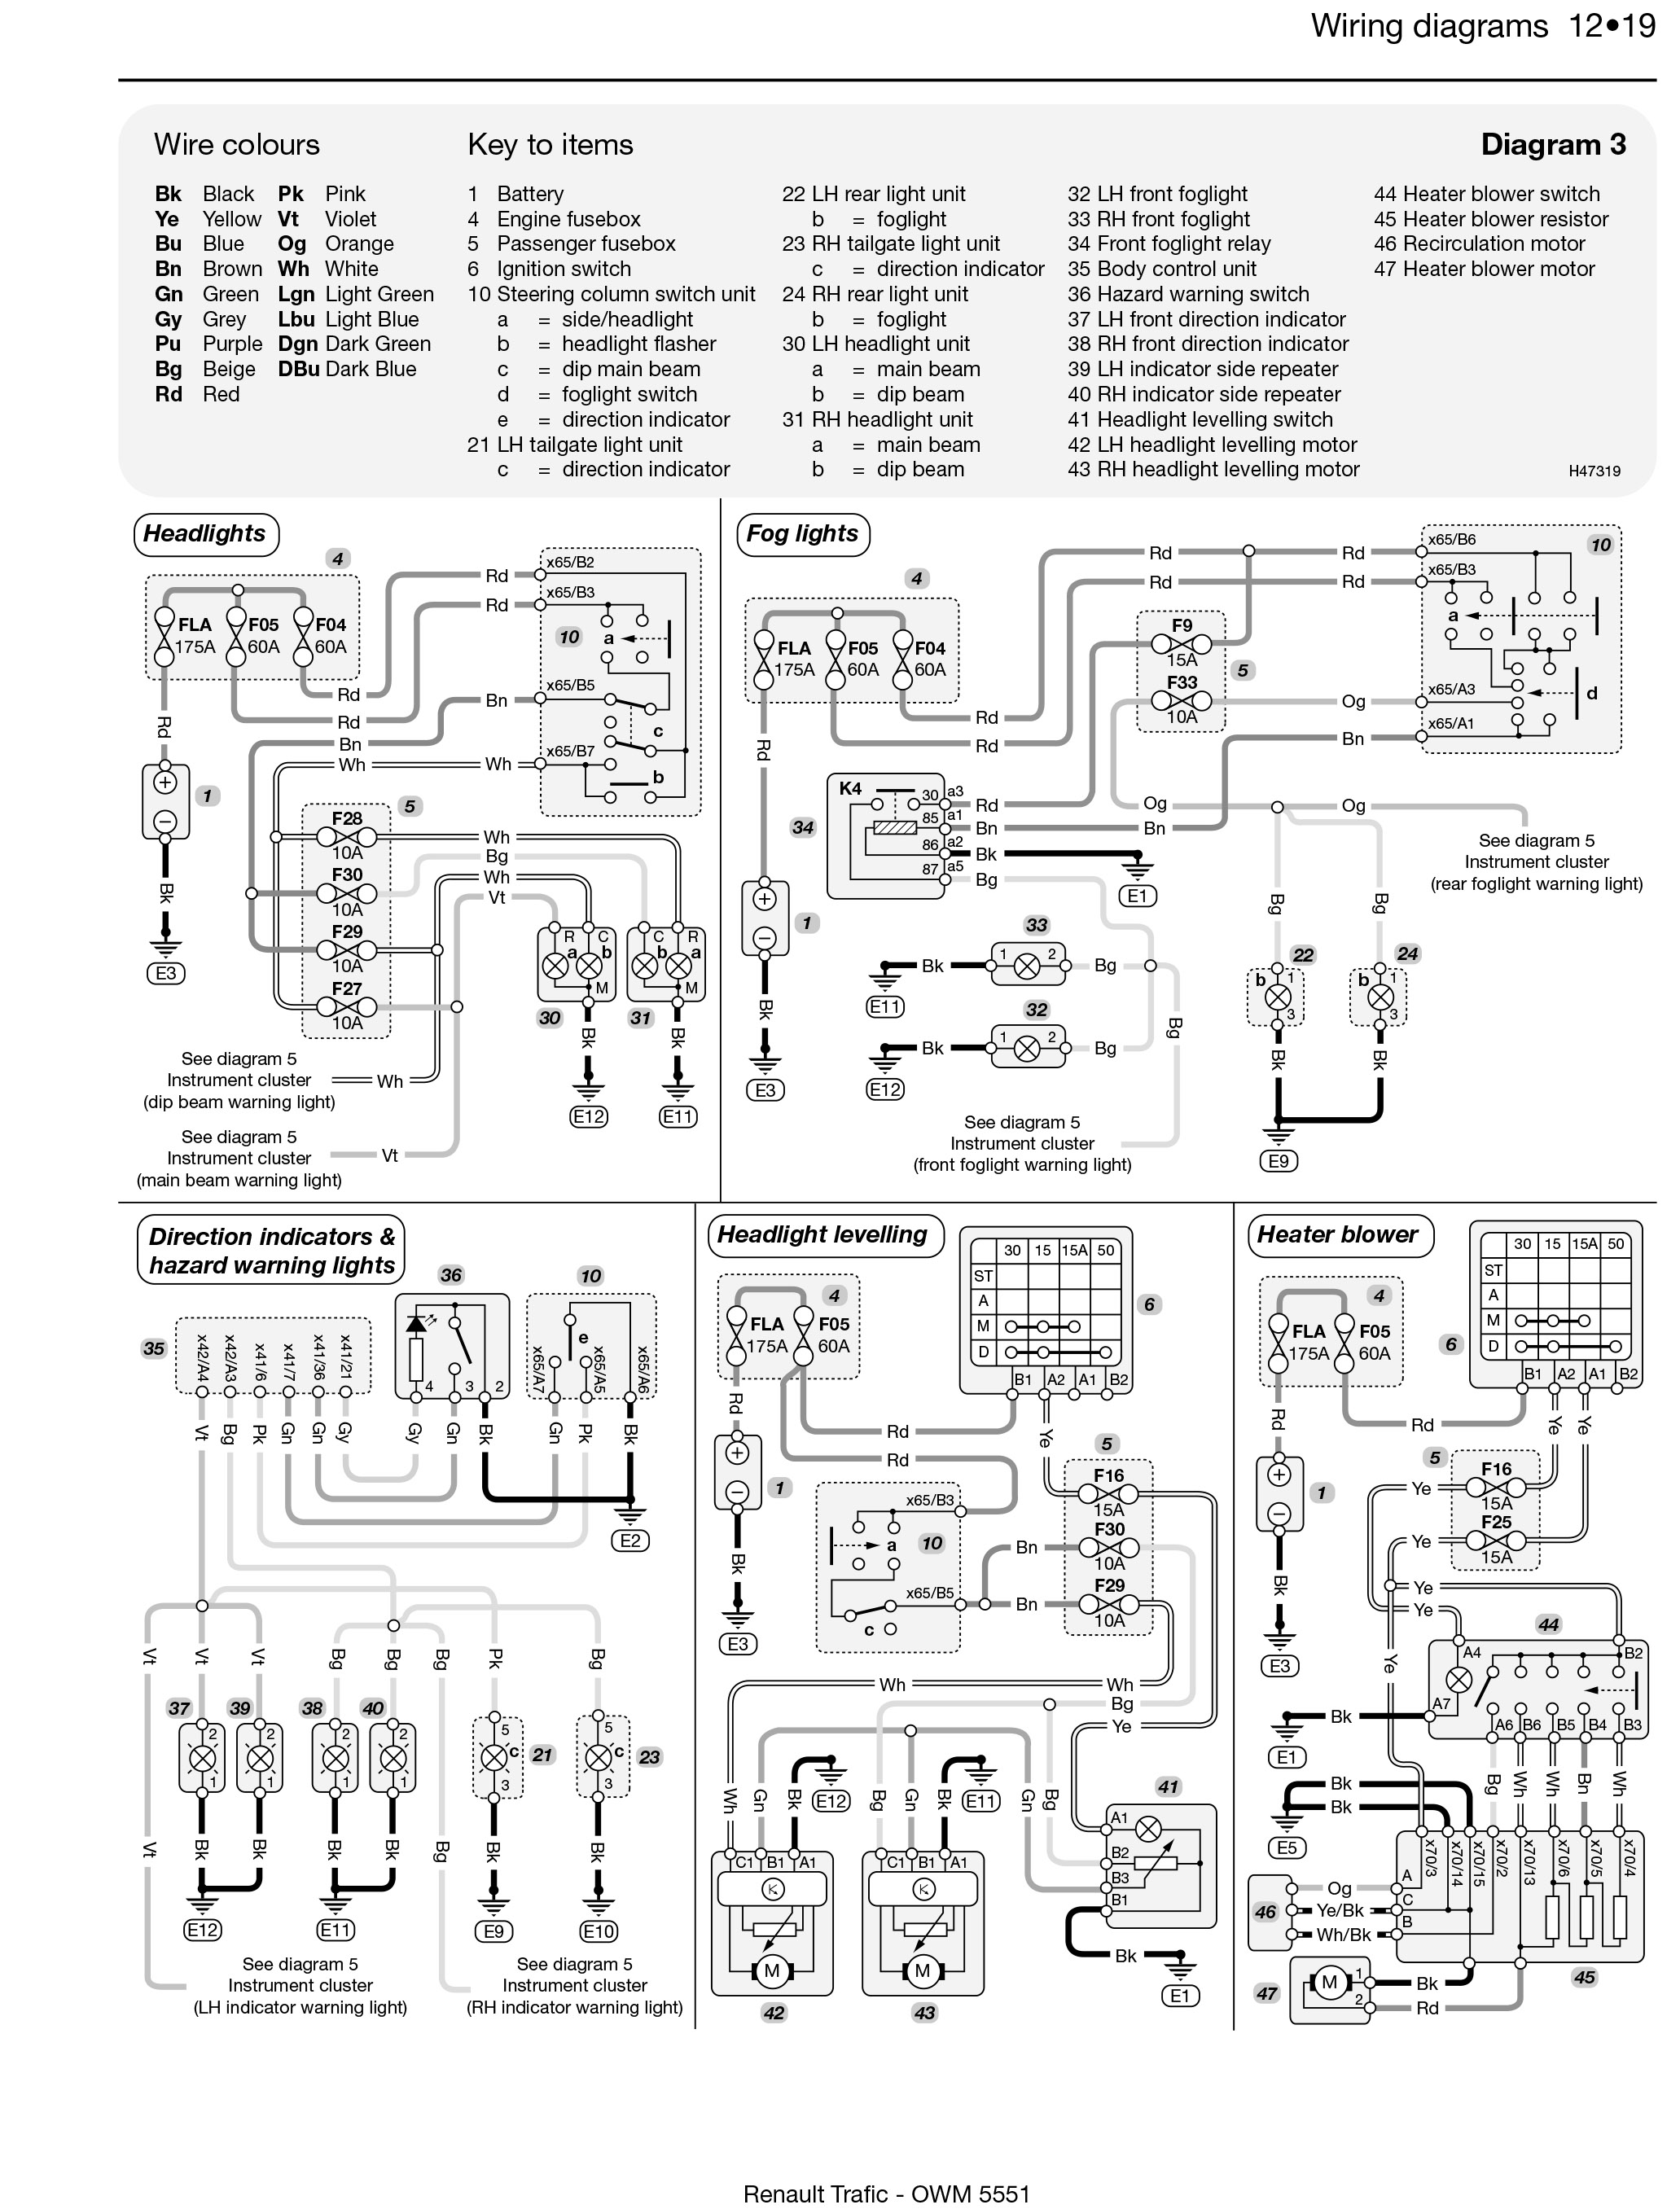 Haynes Wiring Diagrams Online | Repair Manual on